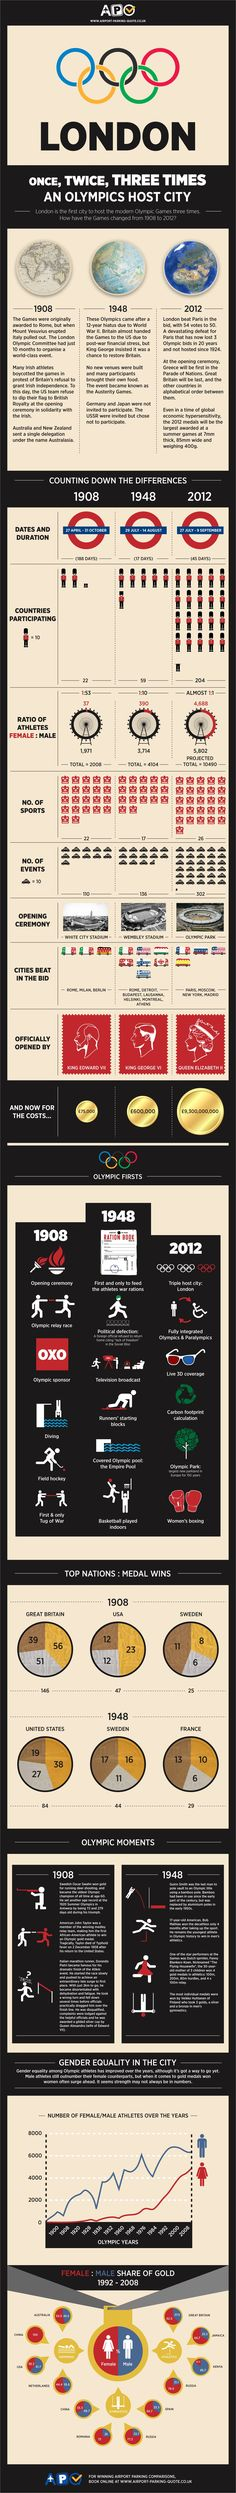 Infographic comparing the 1908, 1948 and 2012 London Olympics  inforgraphic, 2012 london olympics, london, olympics